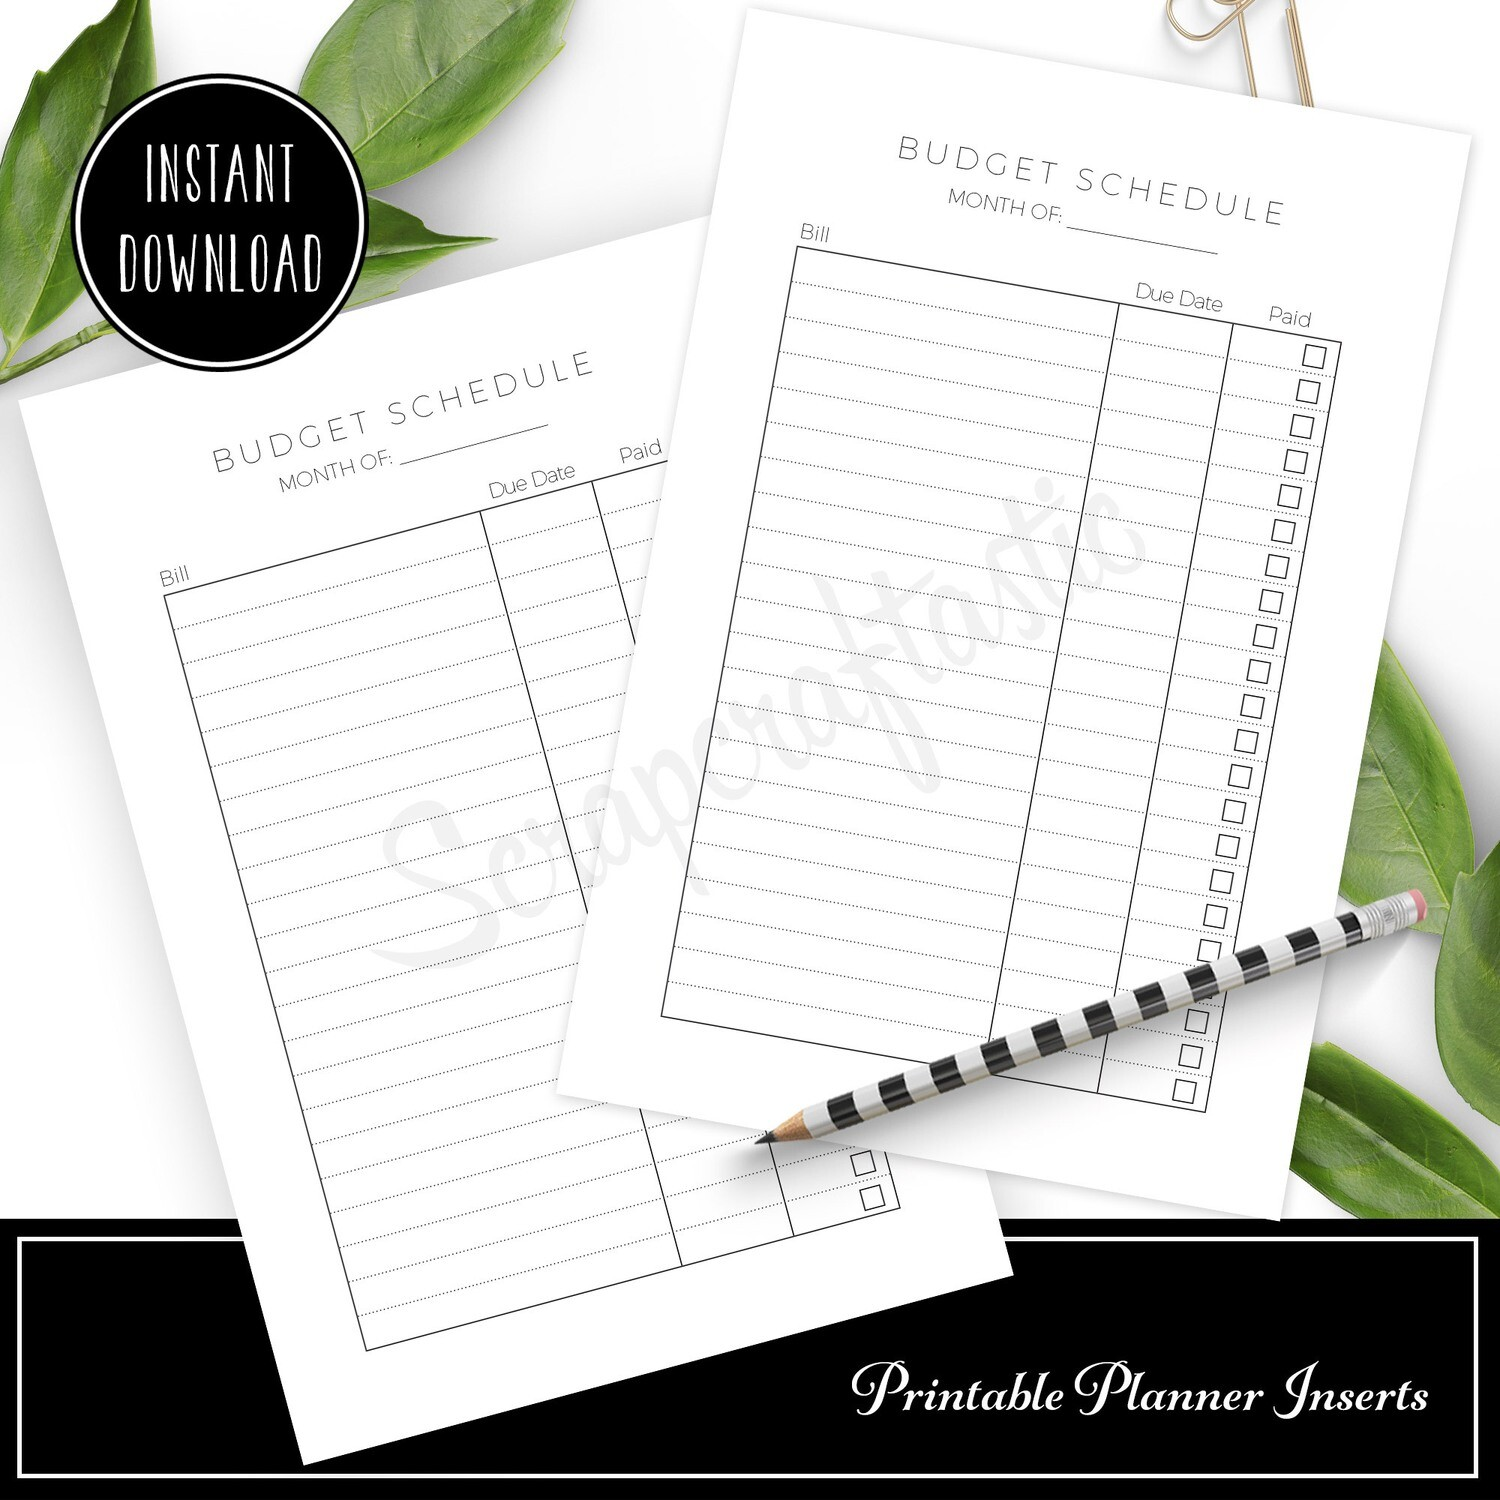 PERSONAL - Monthly Budget Schedule Printable Planner Inserts